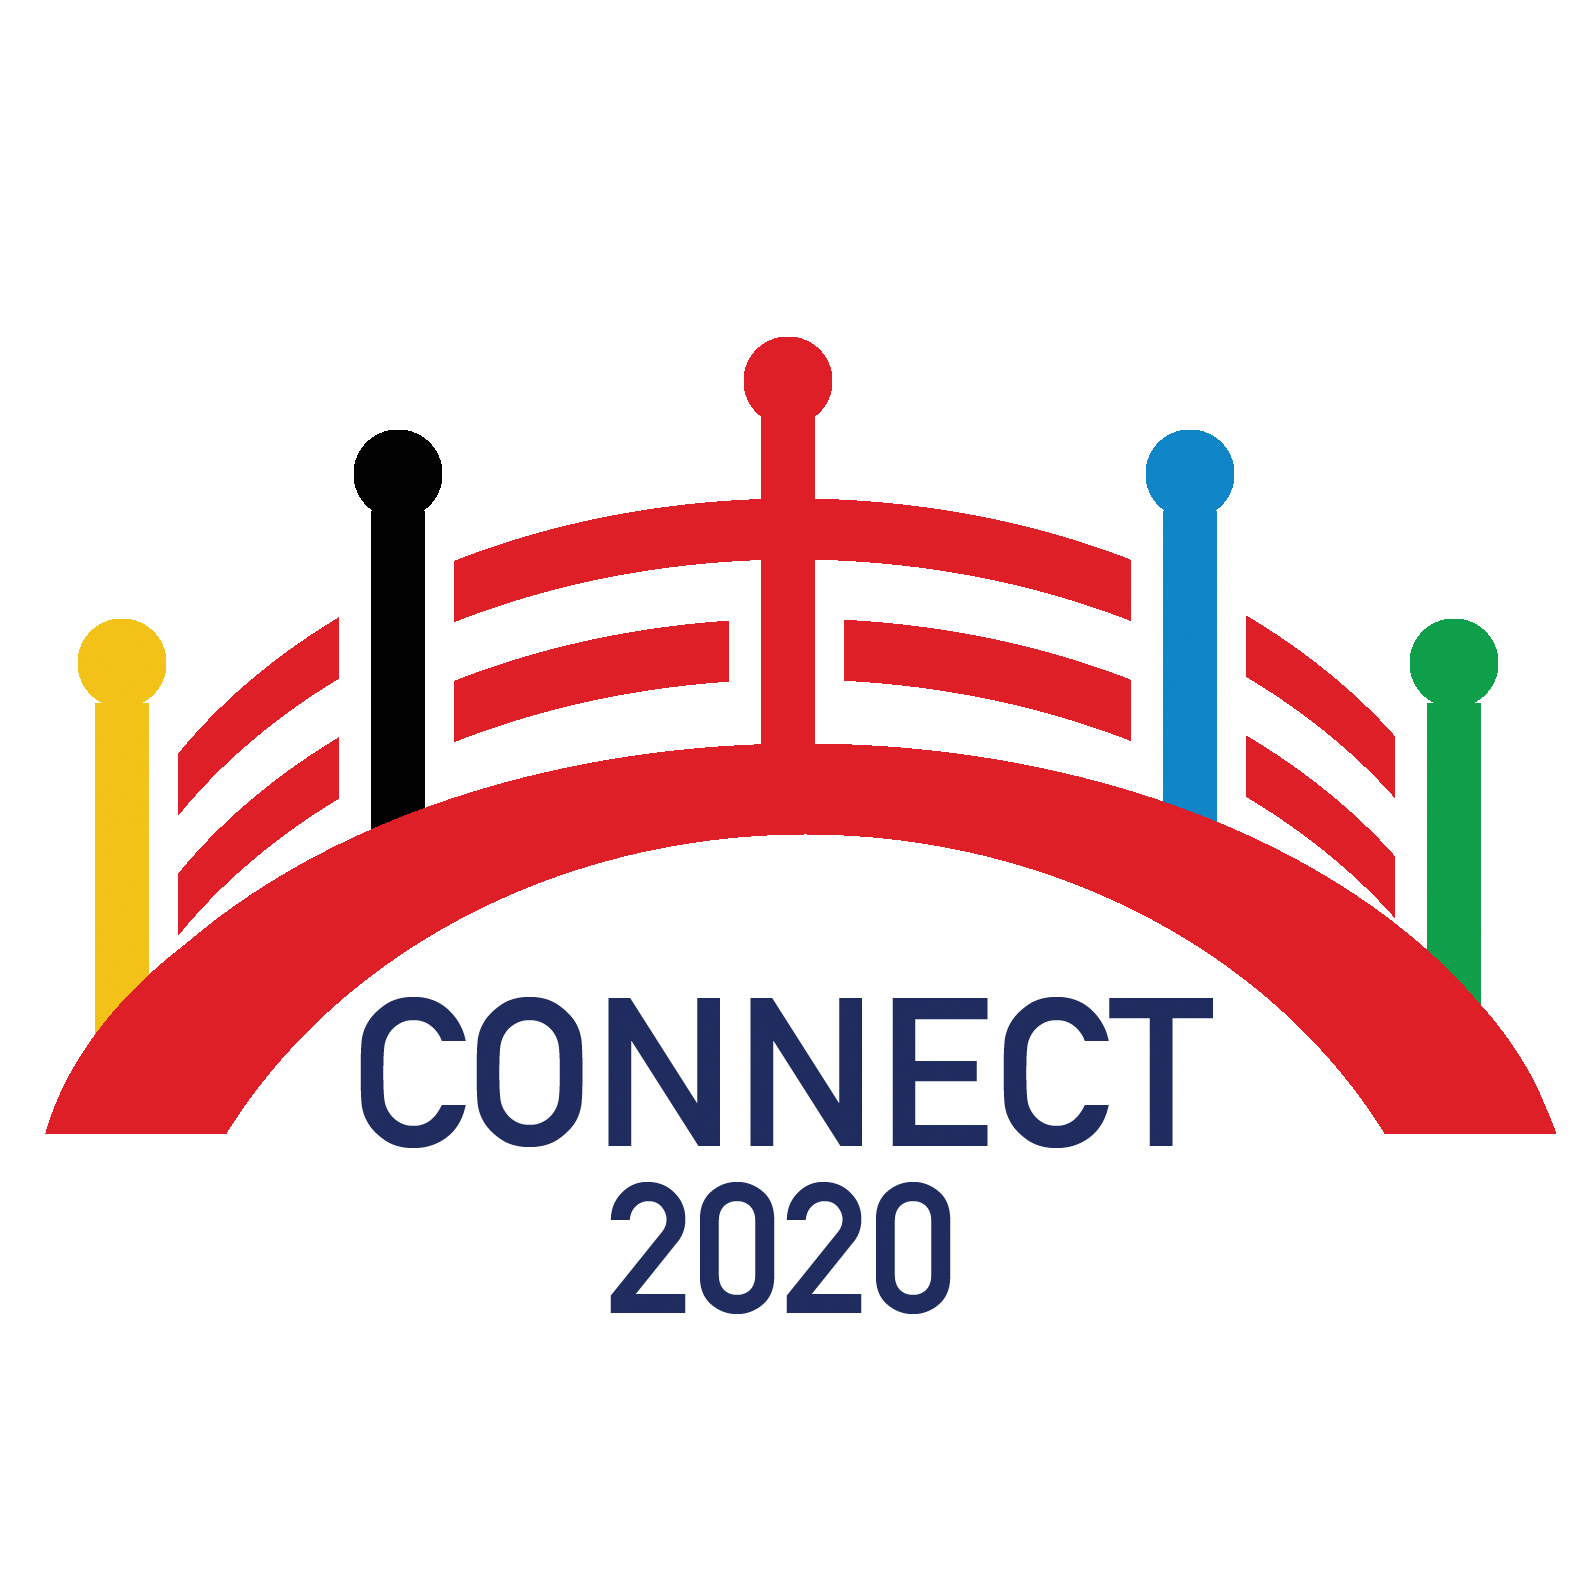 Connect 2020 Logo.jpg